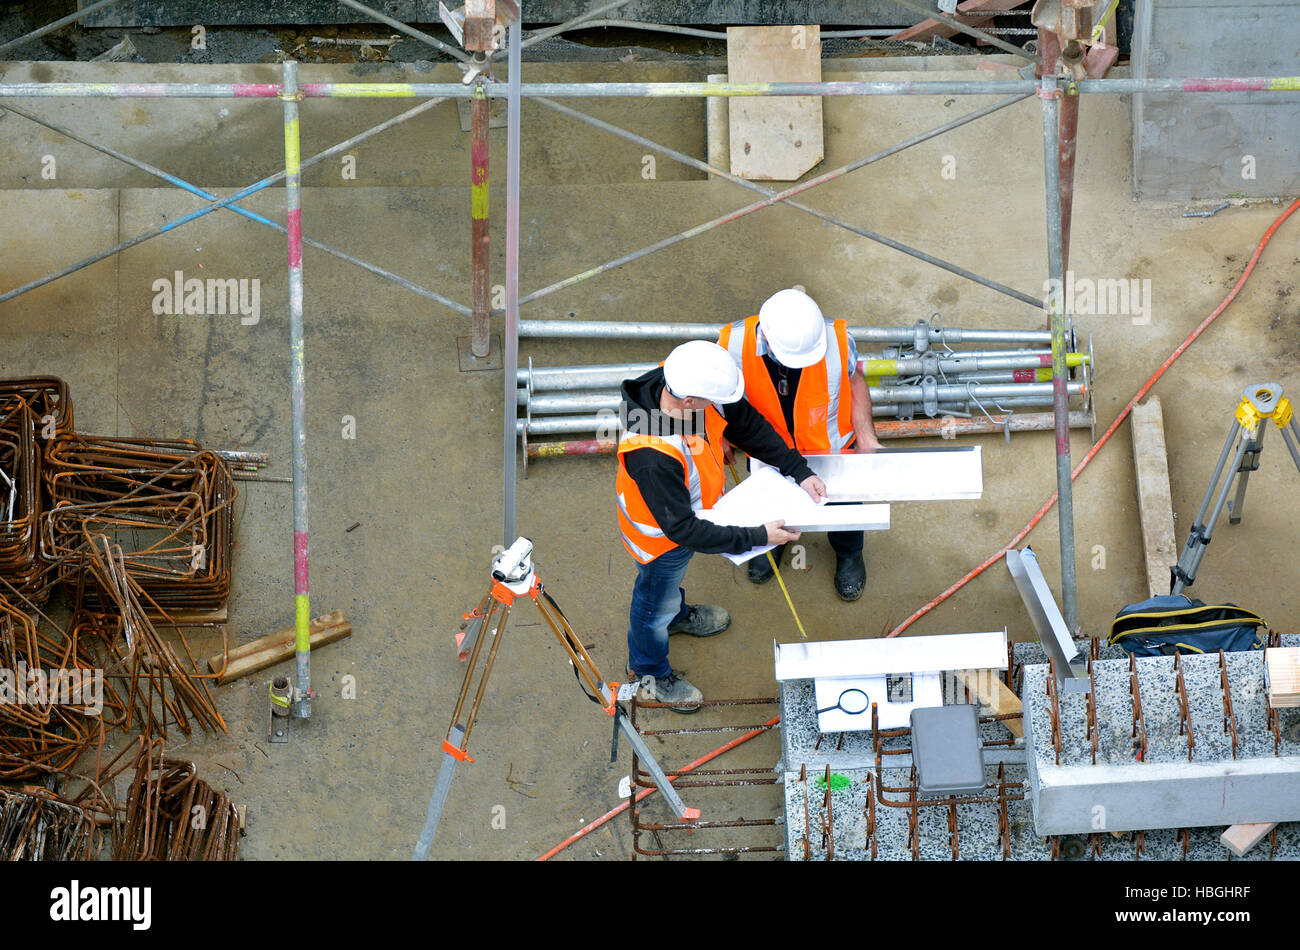 Aerial view of two unrecognized civil engineers inspecting construction site. Building development concept. - Stock Image